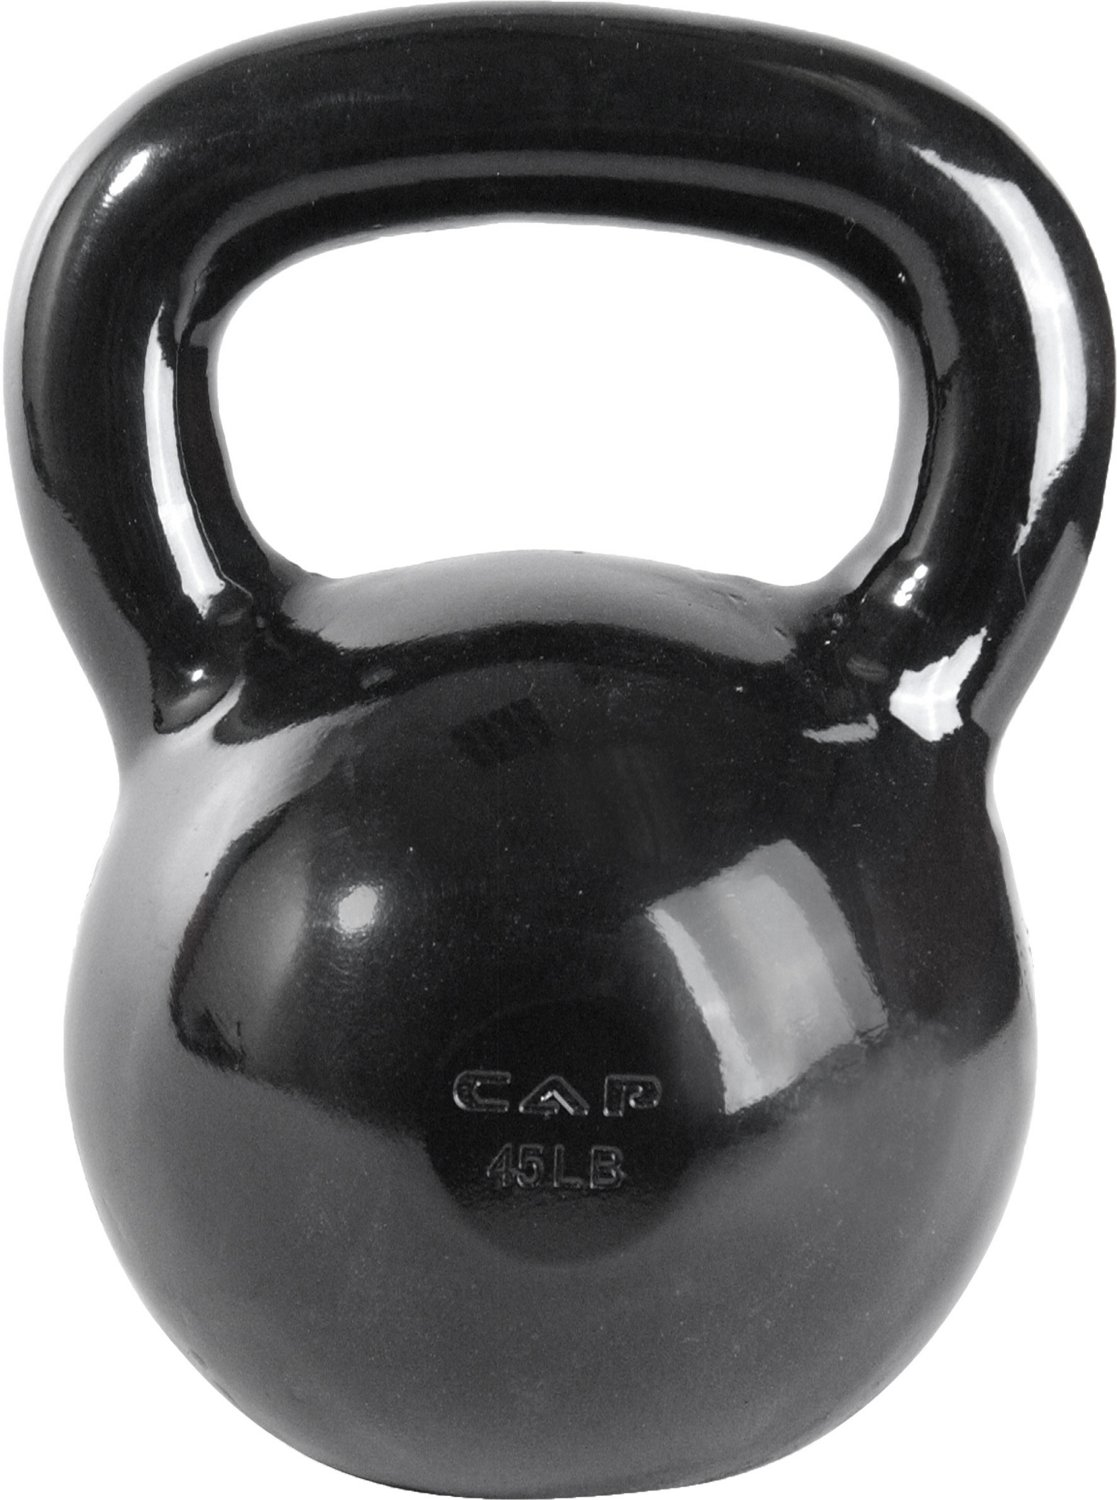 419b0d8df0 Display product reviews for CAP Barbell 45 lb. Cast Iron Kettlebell